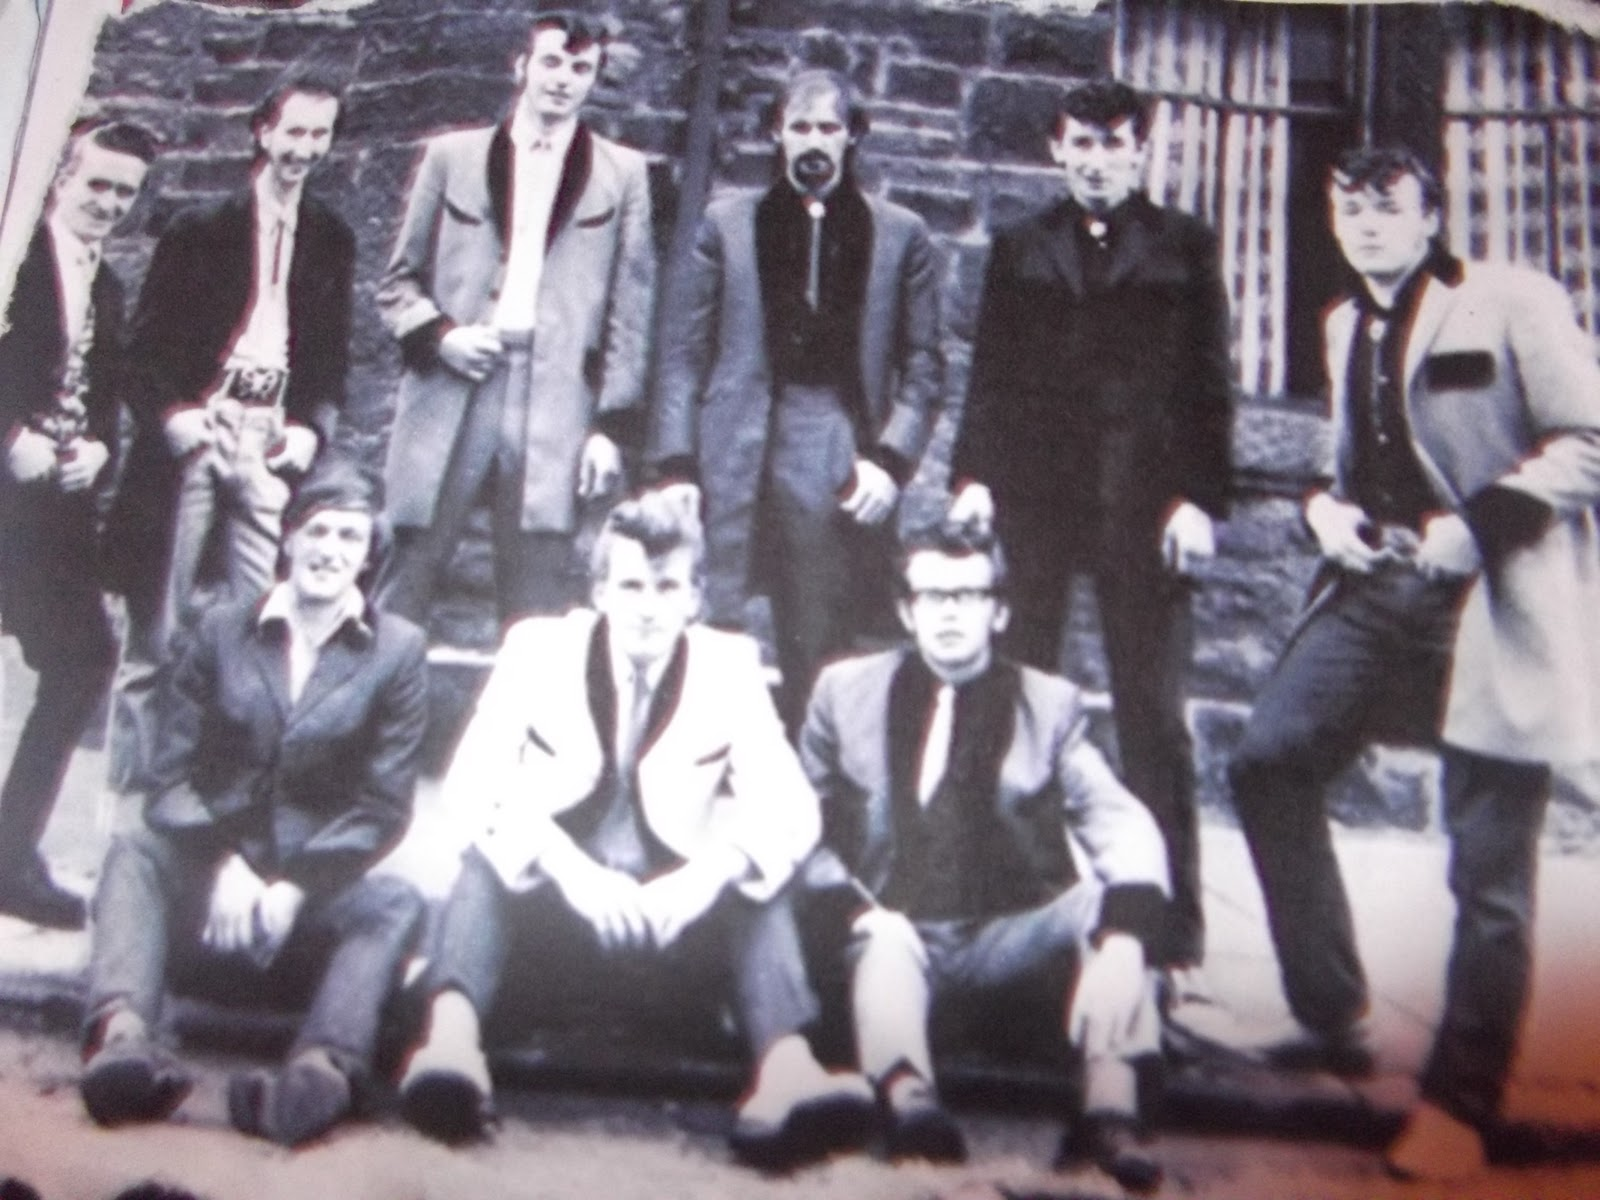 THE CENTRE FRONT- By A4: TEDDY BOYS